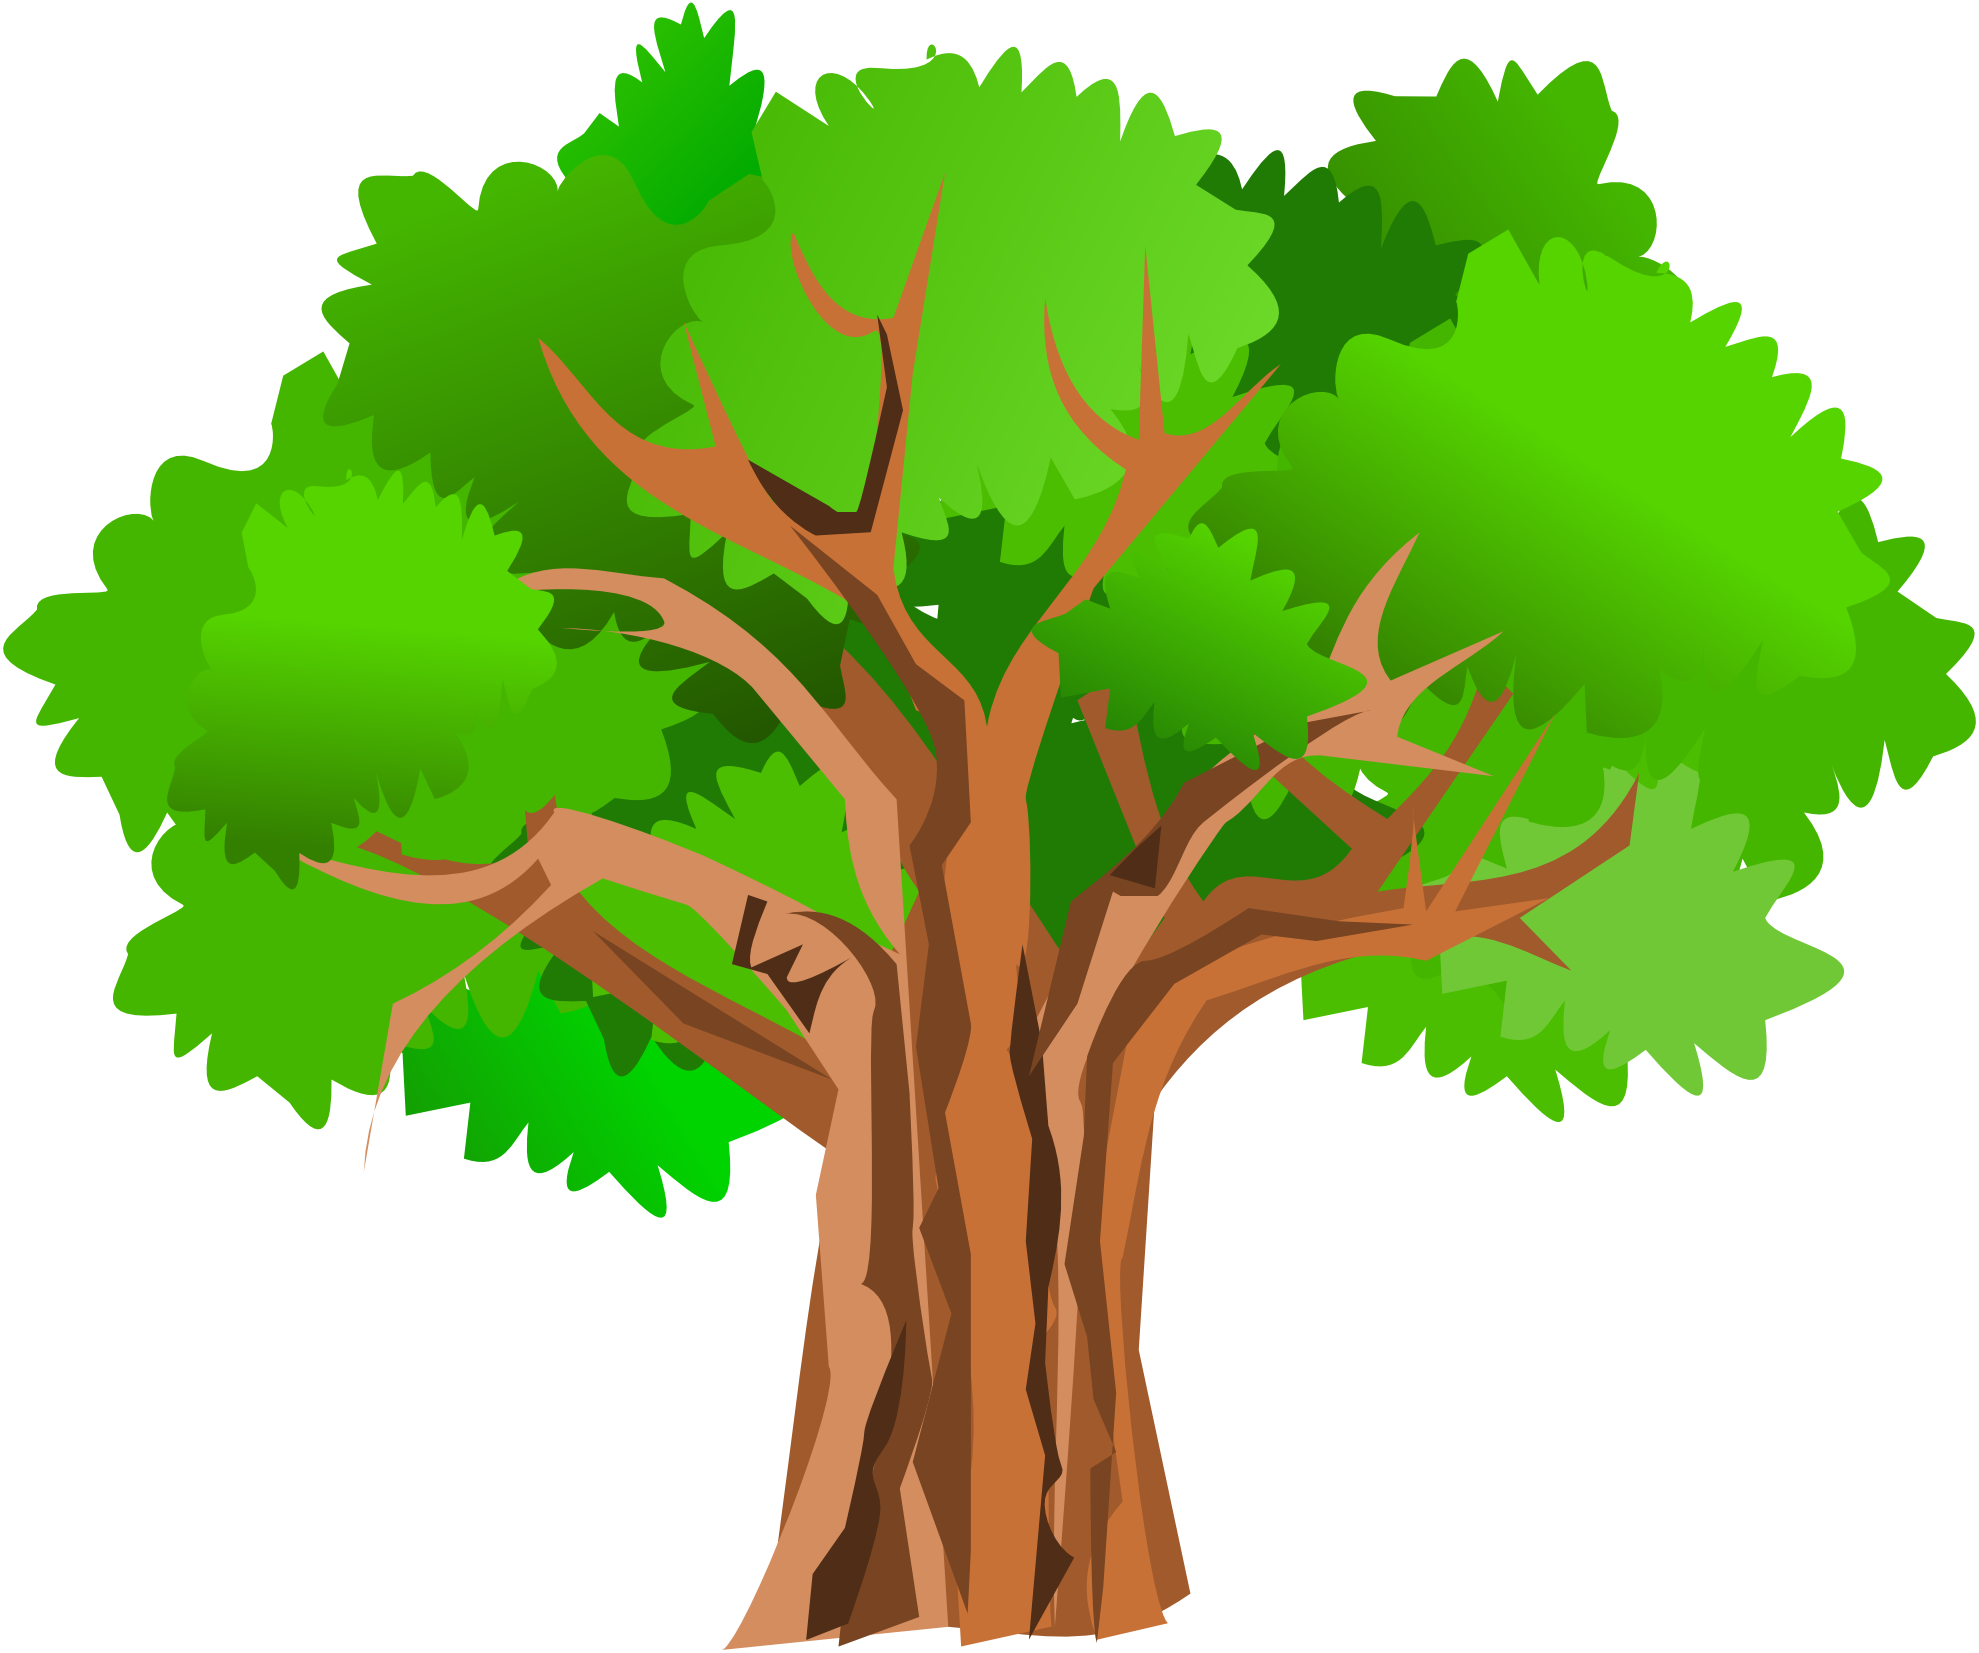 Sad tree clipart clipart freeuse library trees art | Family Tree Clip Art | trees | Pinterest | Tree art ... clipart freeuse library